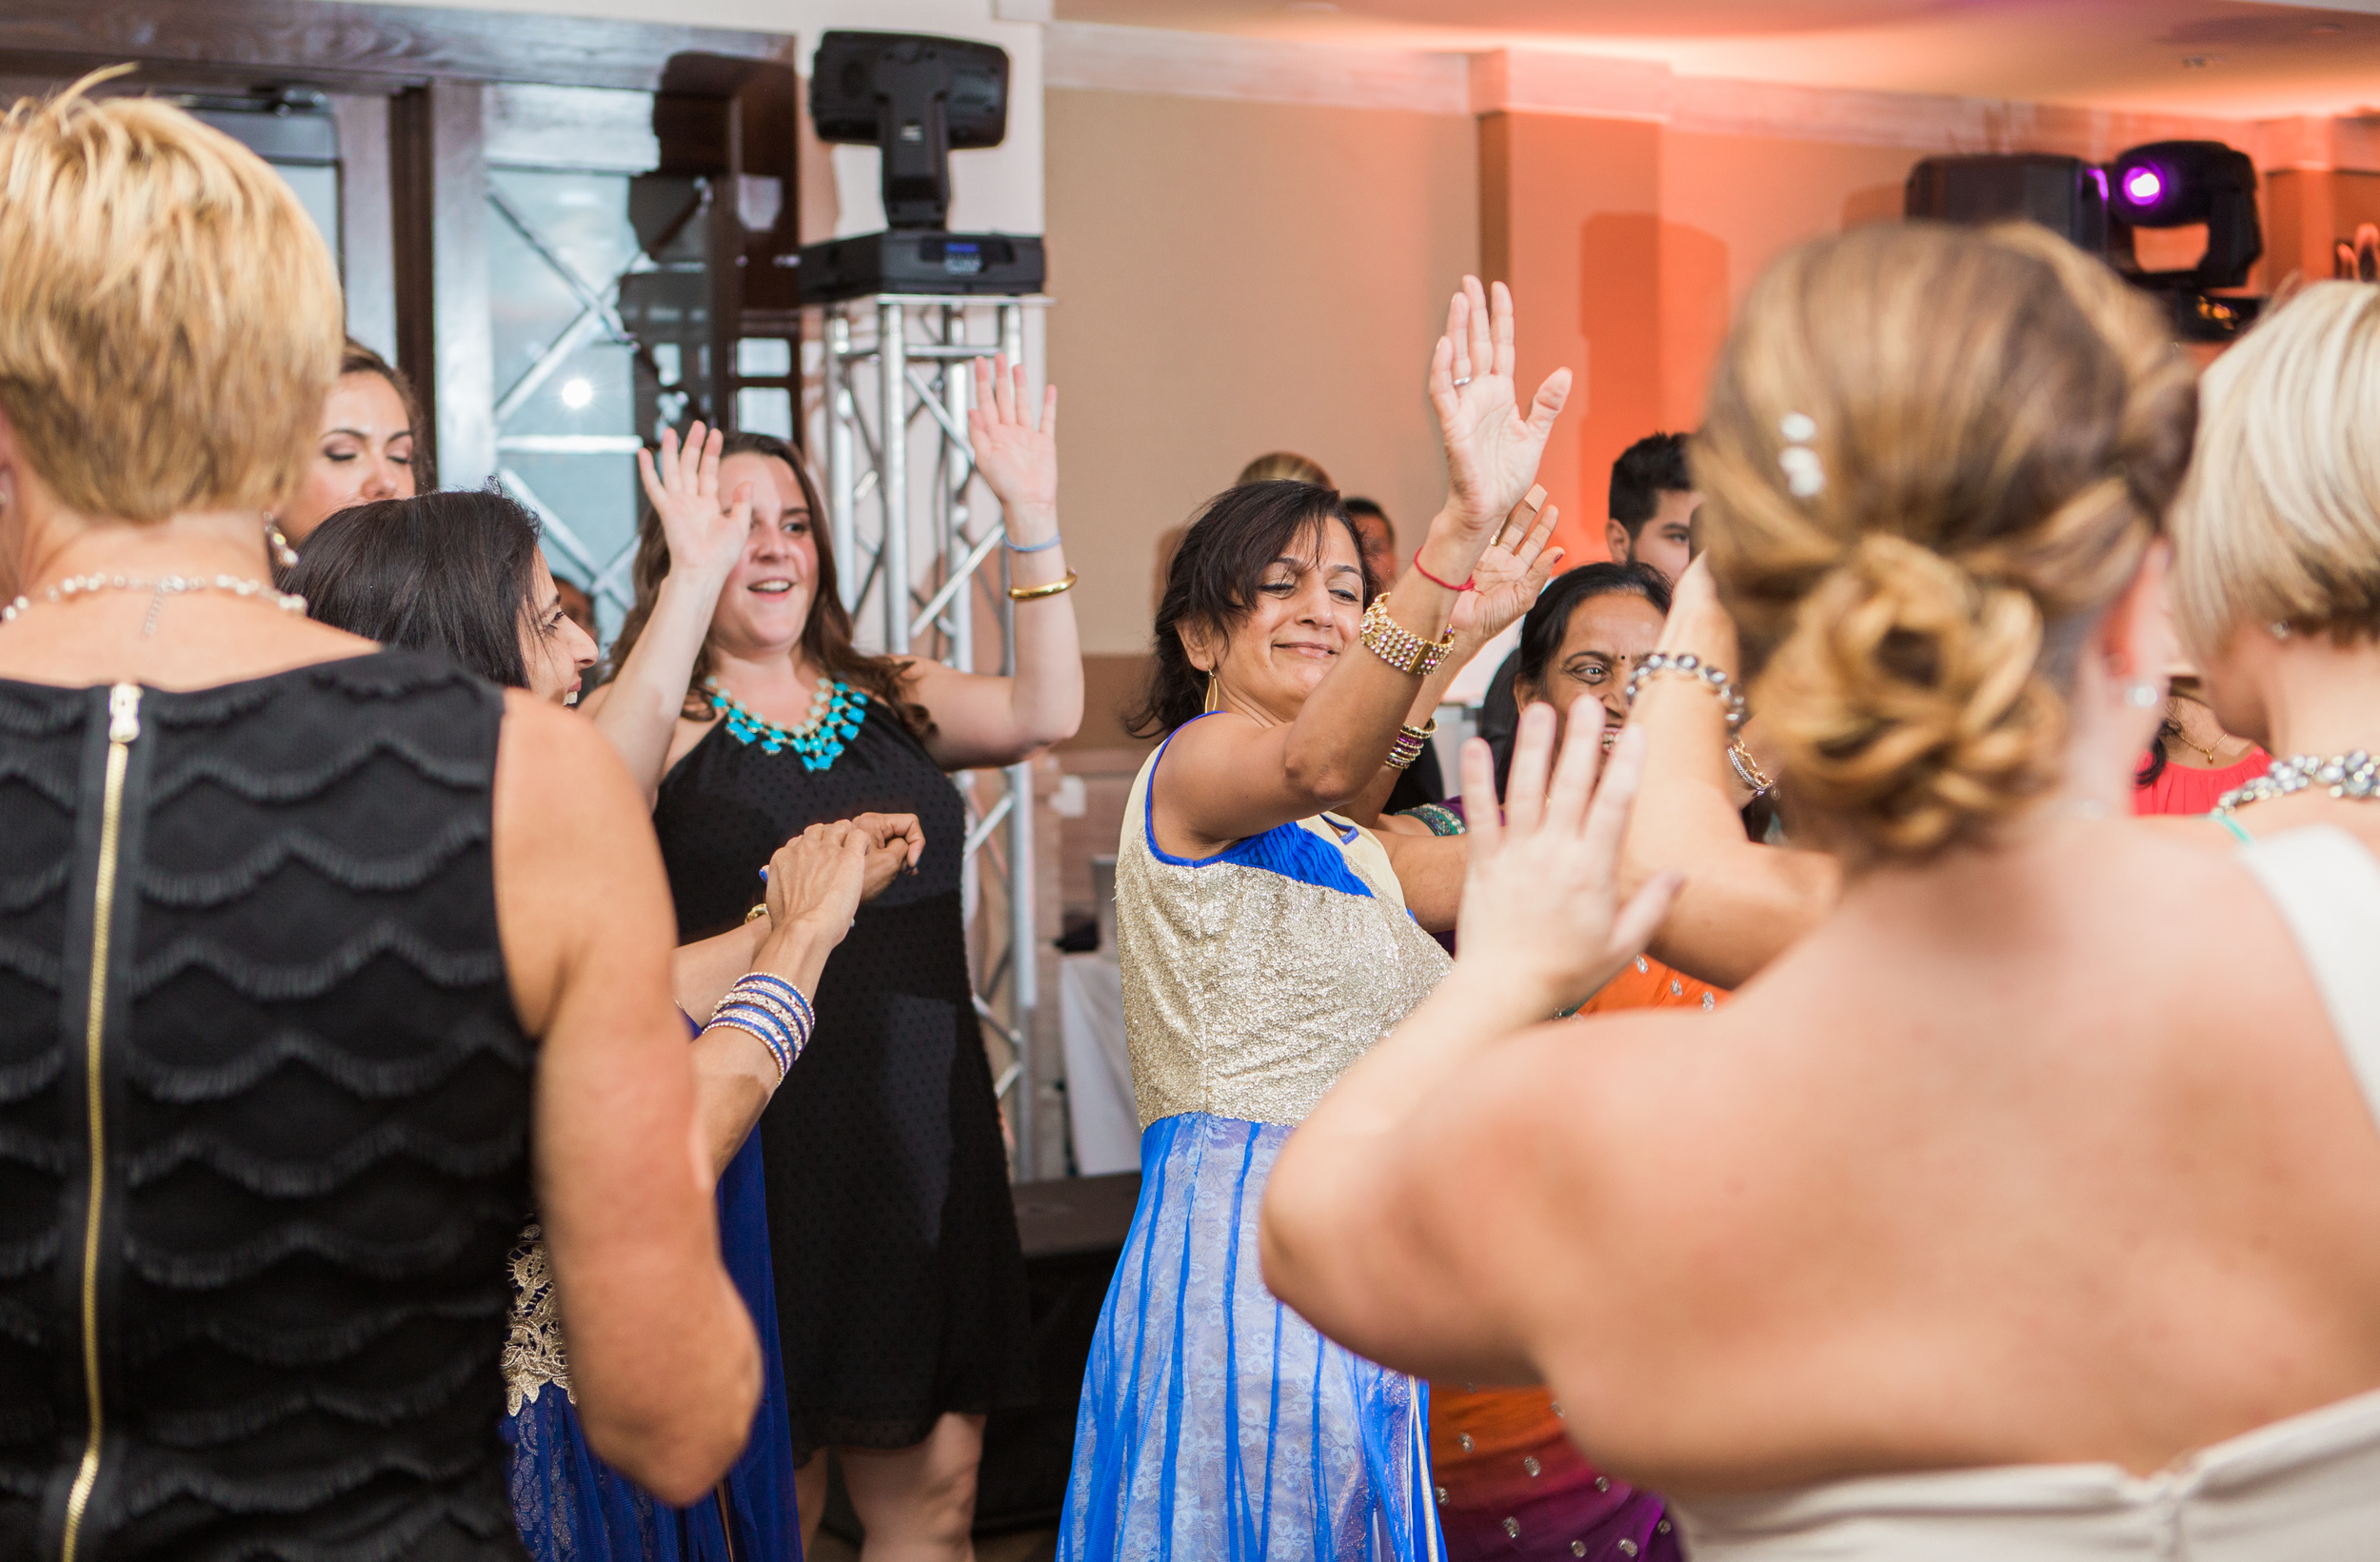 South-Jersey-Wedding-Photographer_The-Reeds-At-Shelter-Haven-Wedding-79.jpg